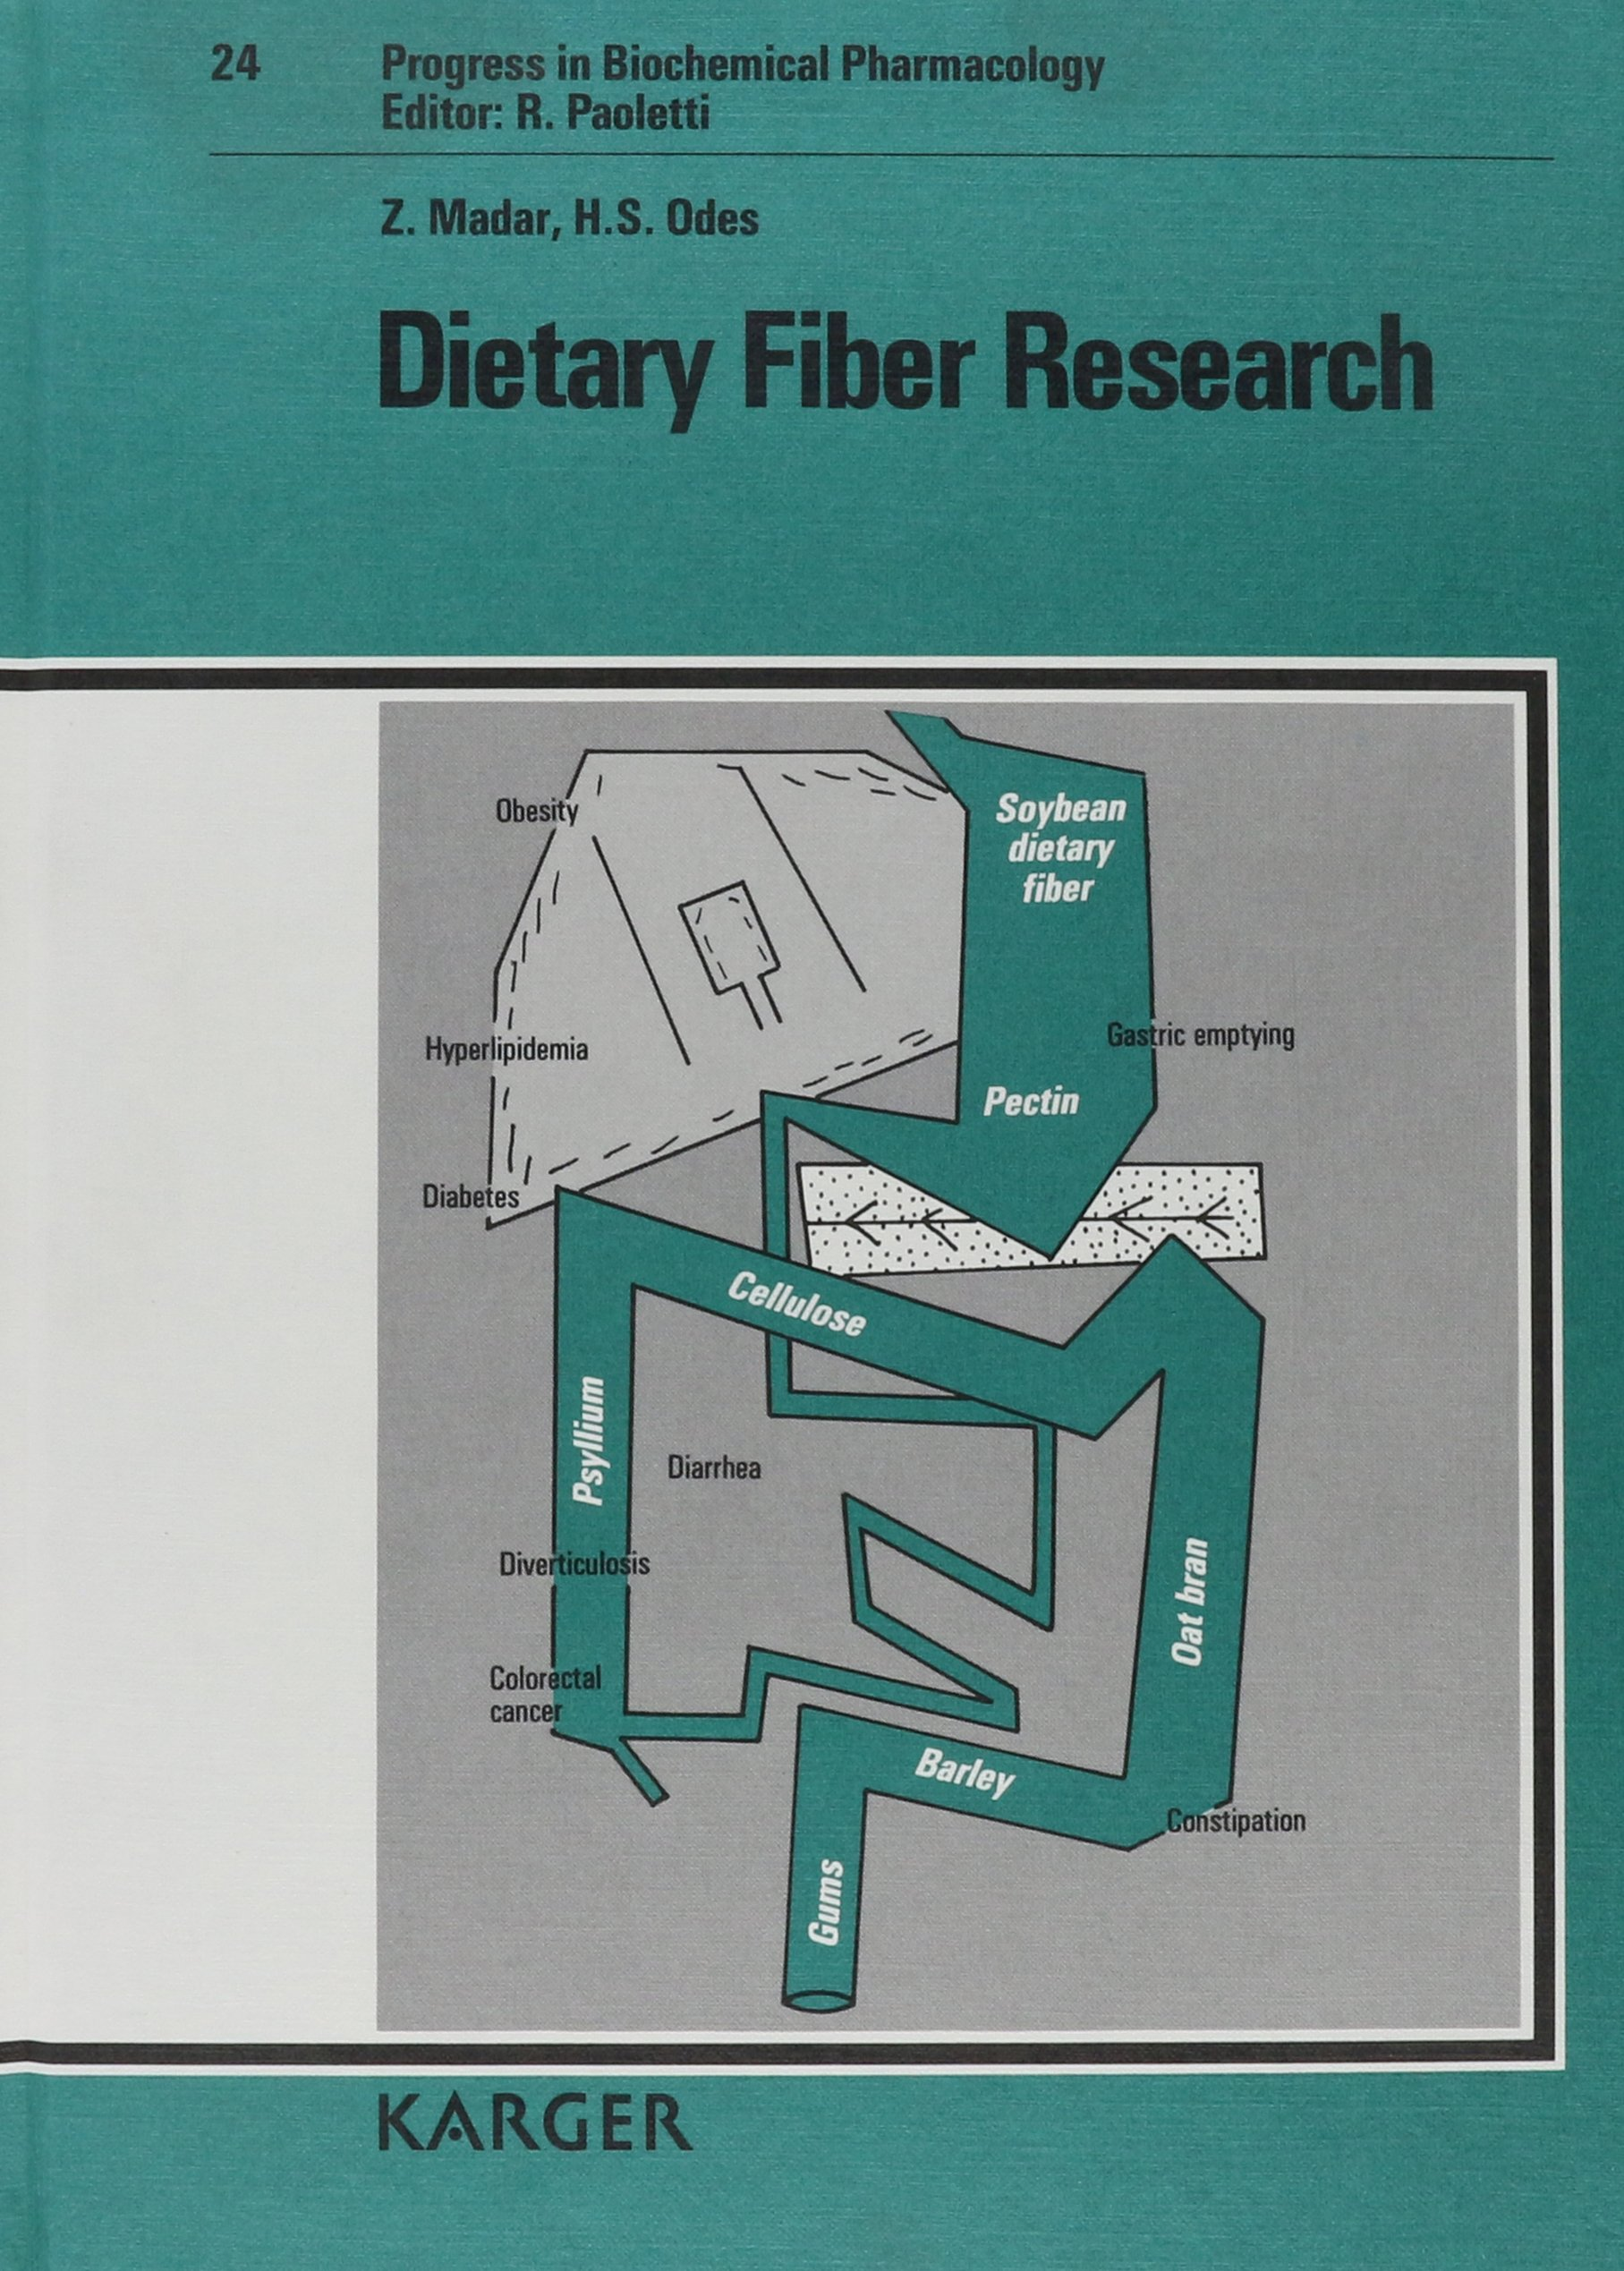 Dietary Fiber Research (Progress in Biochemical Pharmacology, Vol. 24)